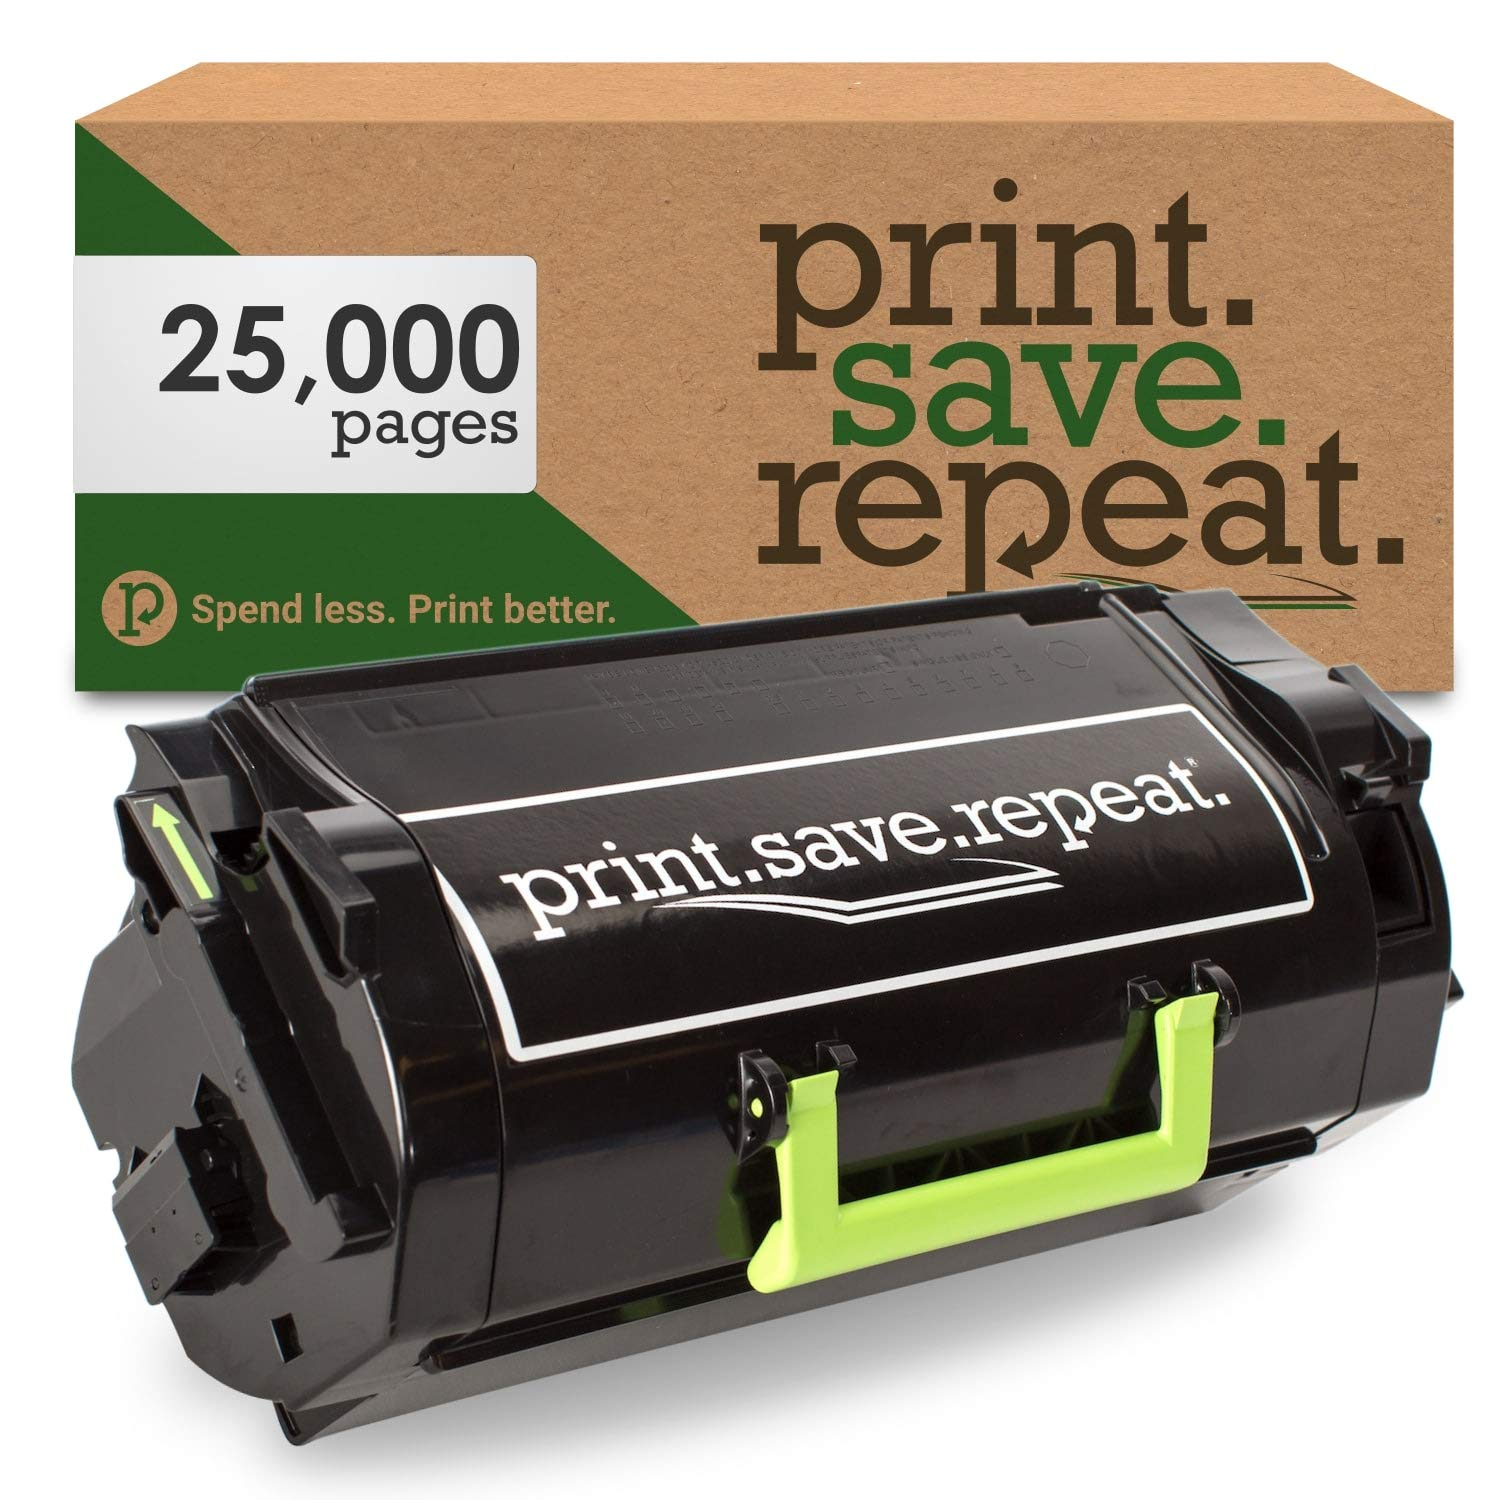 Print.Save.Repeat. Lexmark 521H High Yield Remanufactured Toner Cartridge for MS710, MS711, MS810, MS811, MS812 [25,000 Pages]